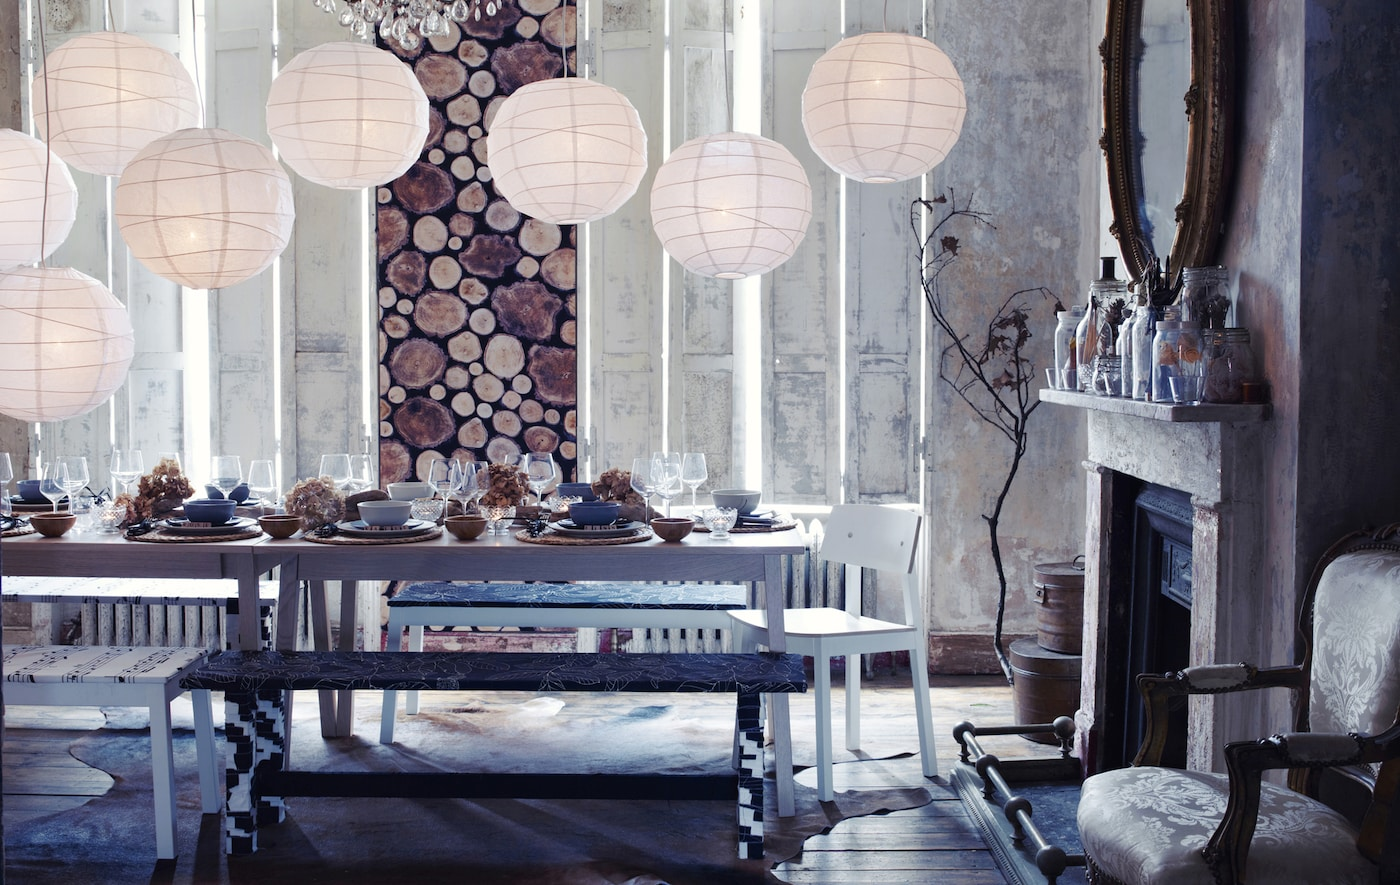 A woodland-style dining room with snowy lanterns and a table covered in winter decoration